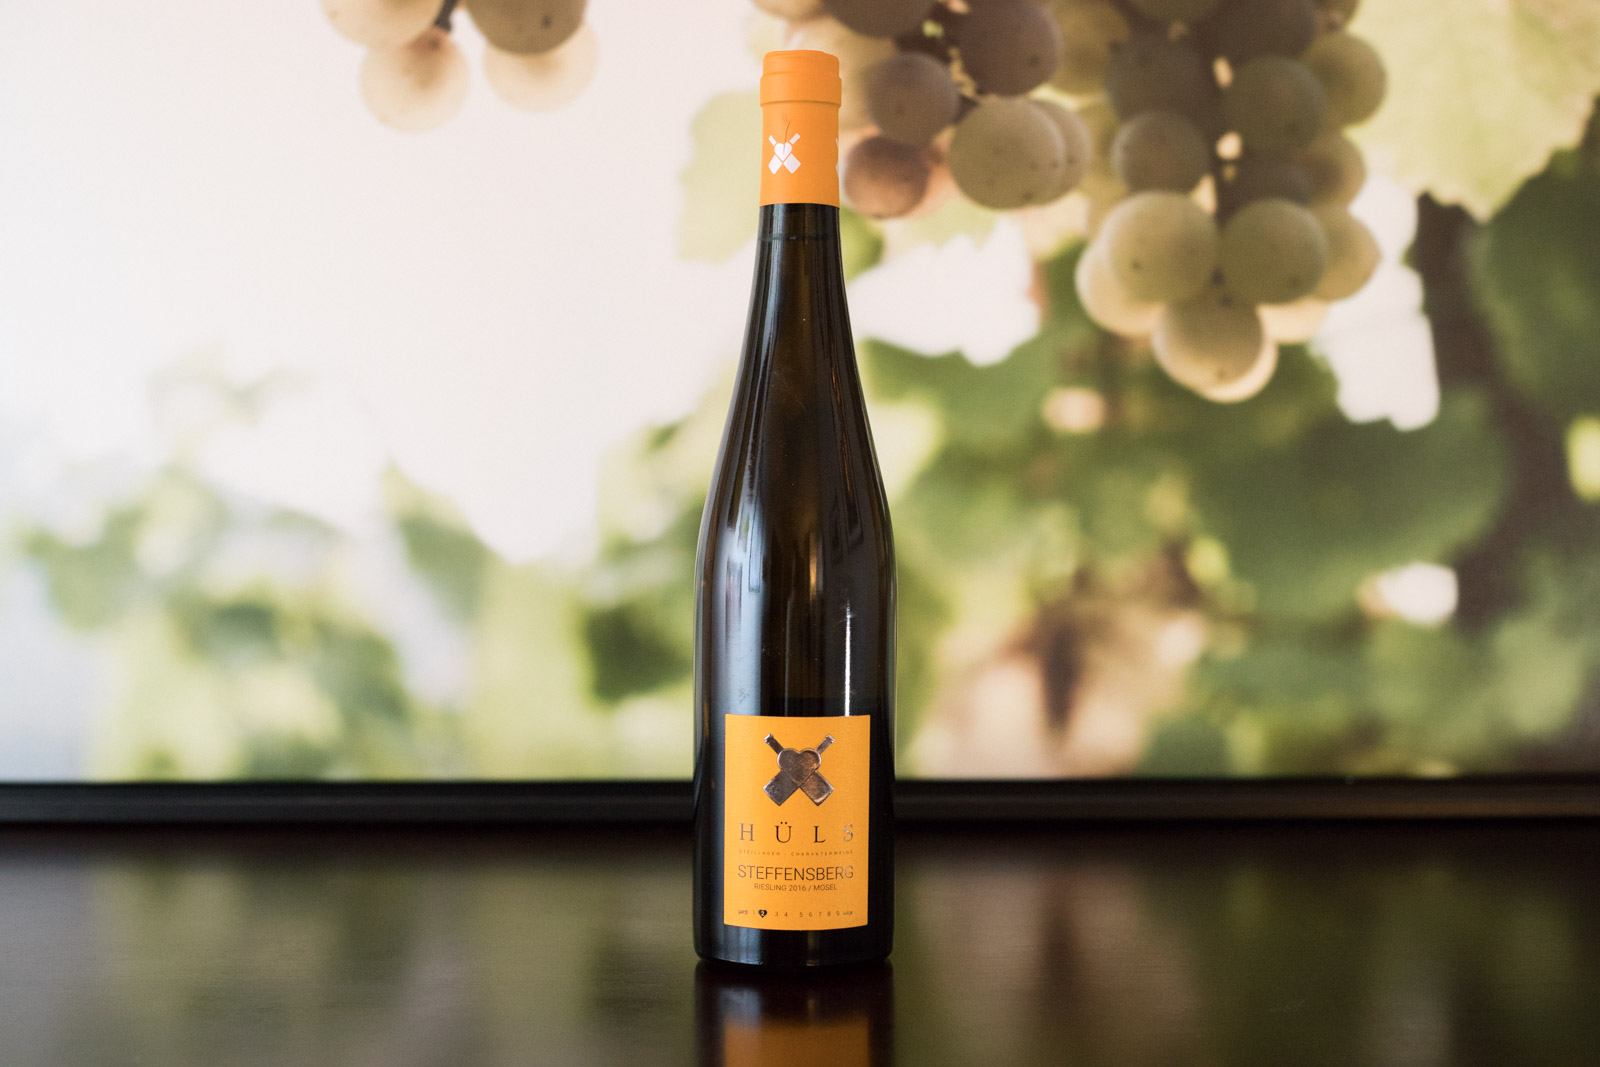 2016 Markus Hüls Steffensberg Mosel Riesling ©Kevin Day/Opening a Bottle